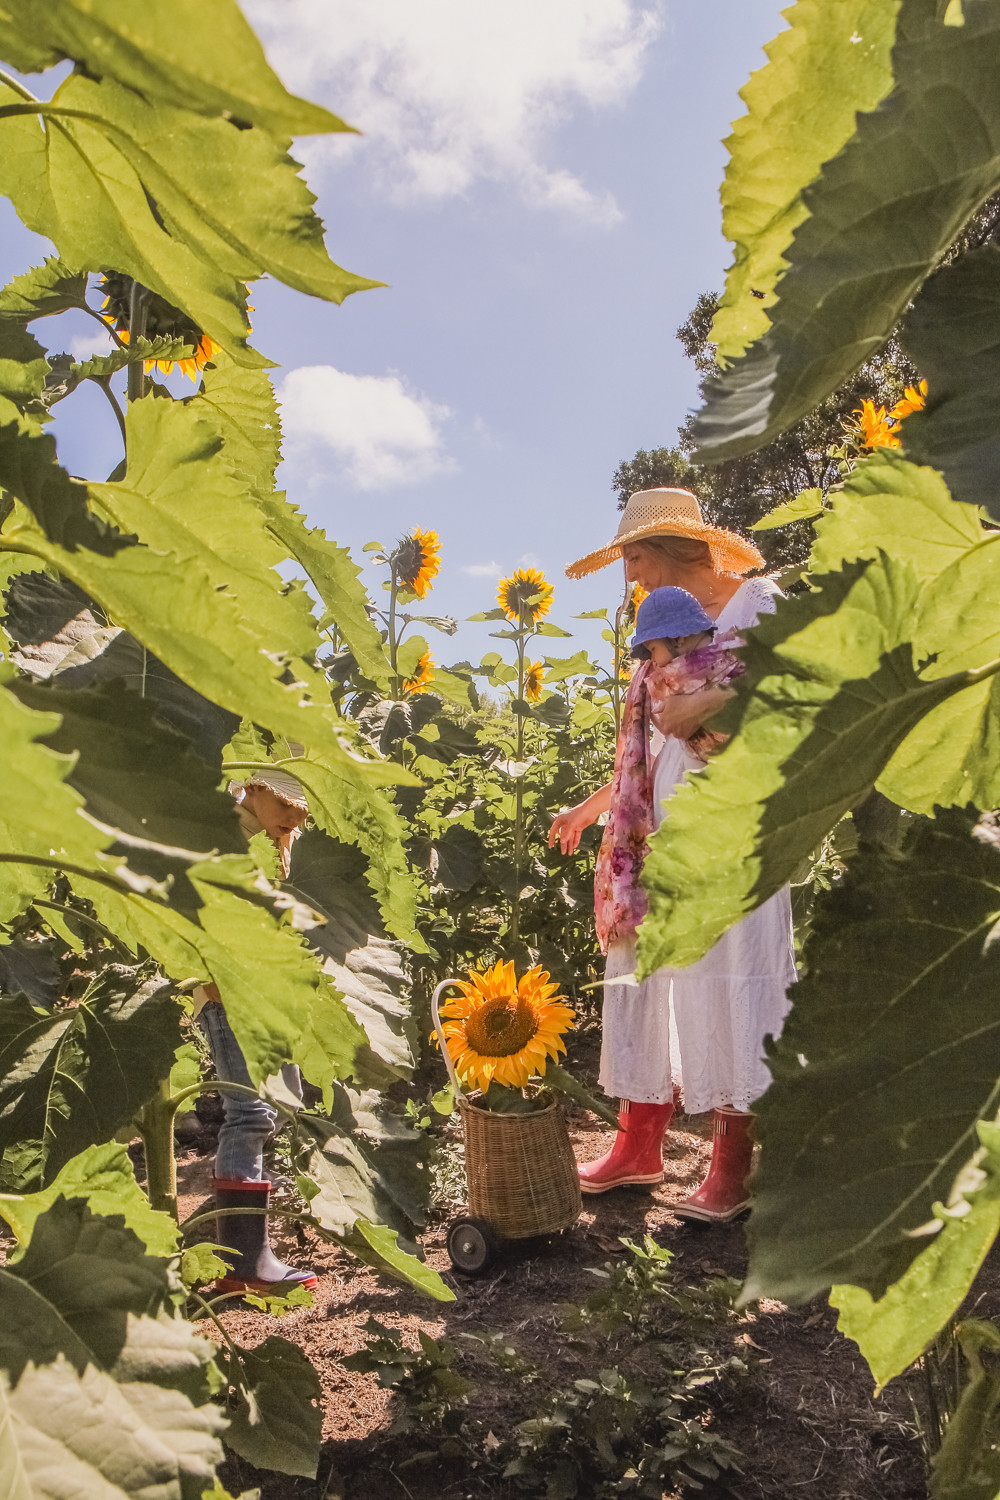 Goldfields Girl at sunflower farm in Ballarat in Victoria. Wearing white eyelet dress, straw hat and pink ring sling baby carrier pulling Olli Ella buggy filled with sunflowers